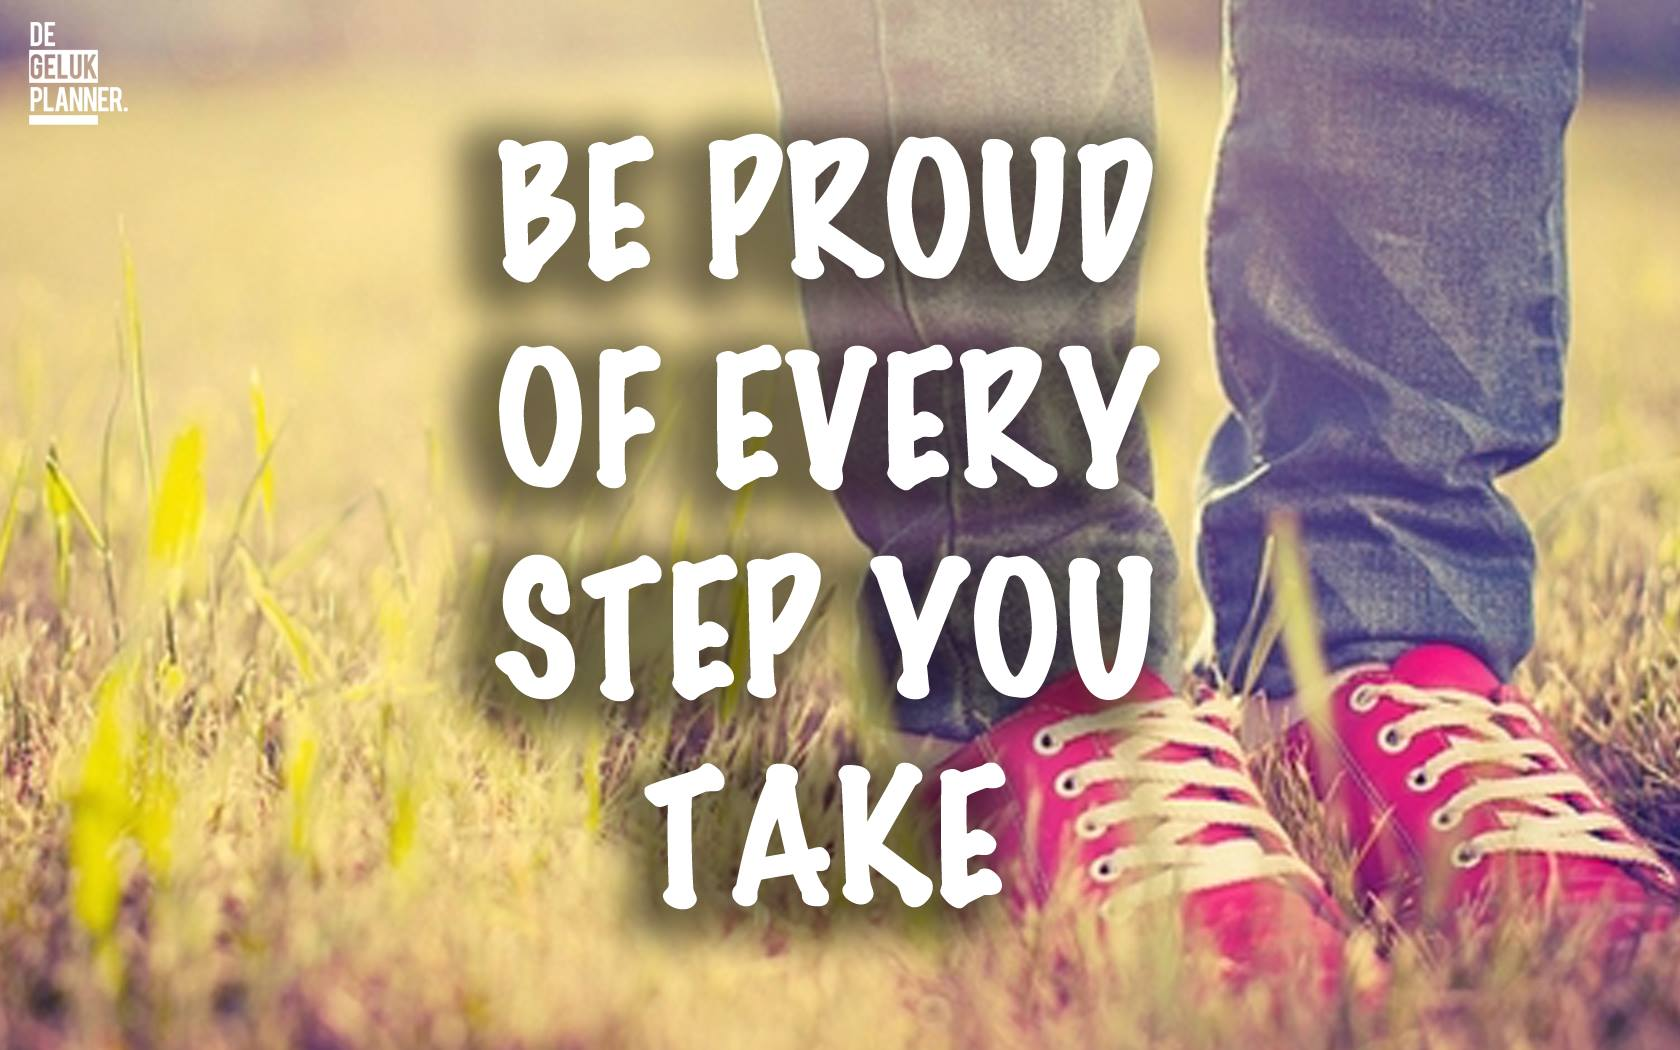 BE PROUD OF EVERY STEP YOU TAKE - WEES TROTS OP ELKE STAP